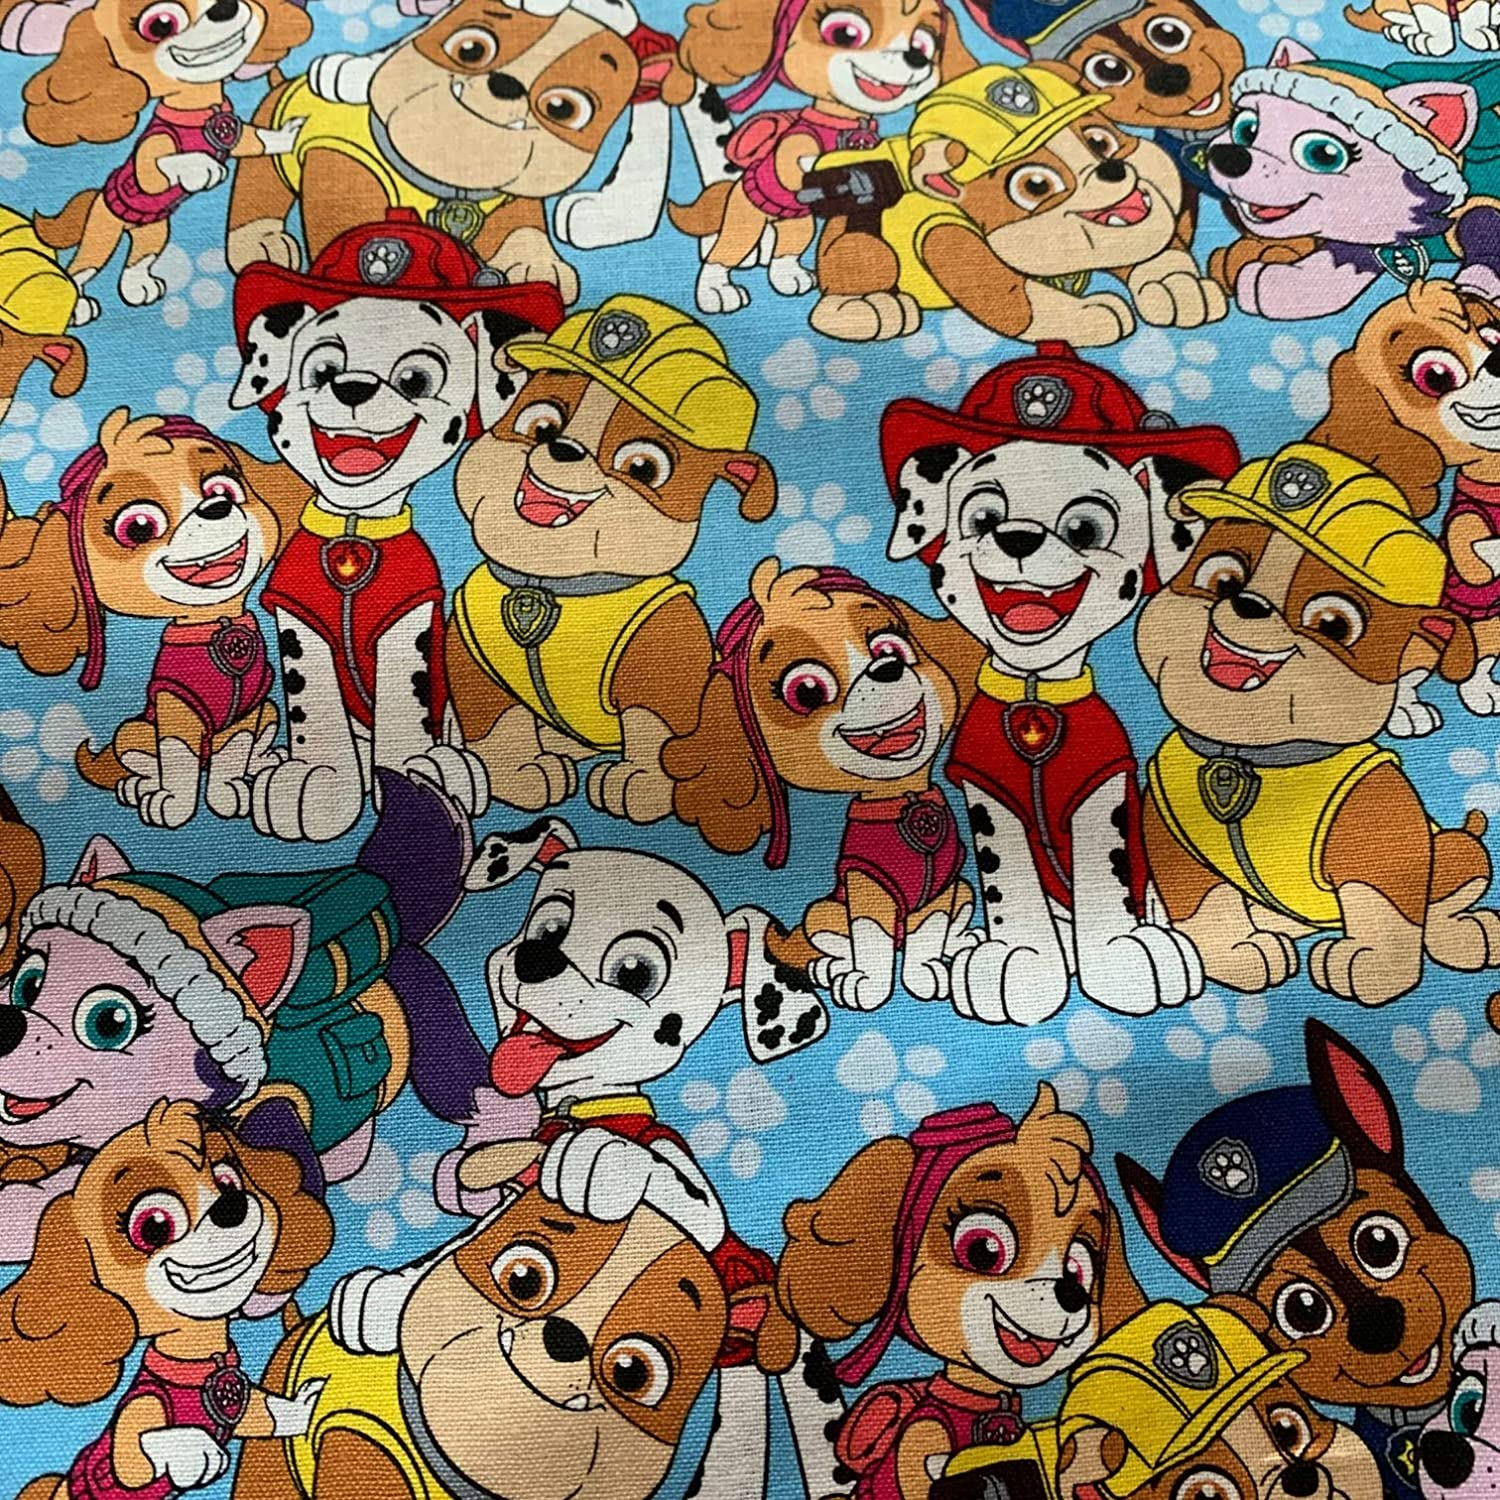 Fabric Face Mask Material Bright Colorful Prints and Designs for Kids and Adults Precut 100% Cotton 18x21 Inch Fat Quarter (Blue Paw)